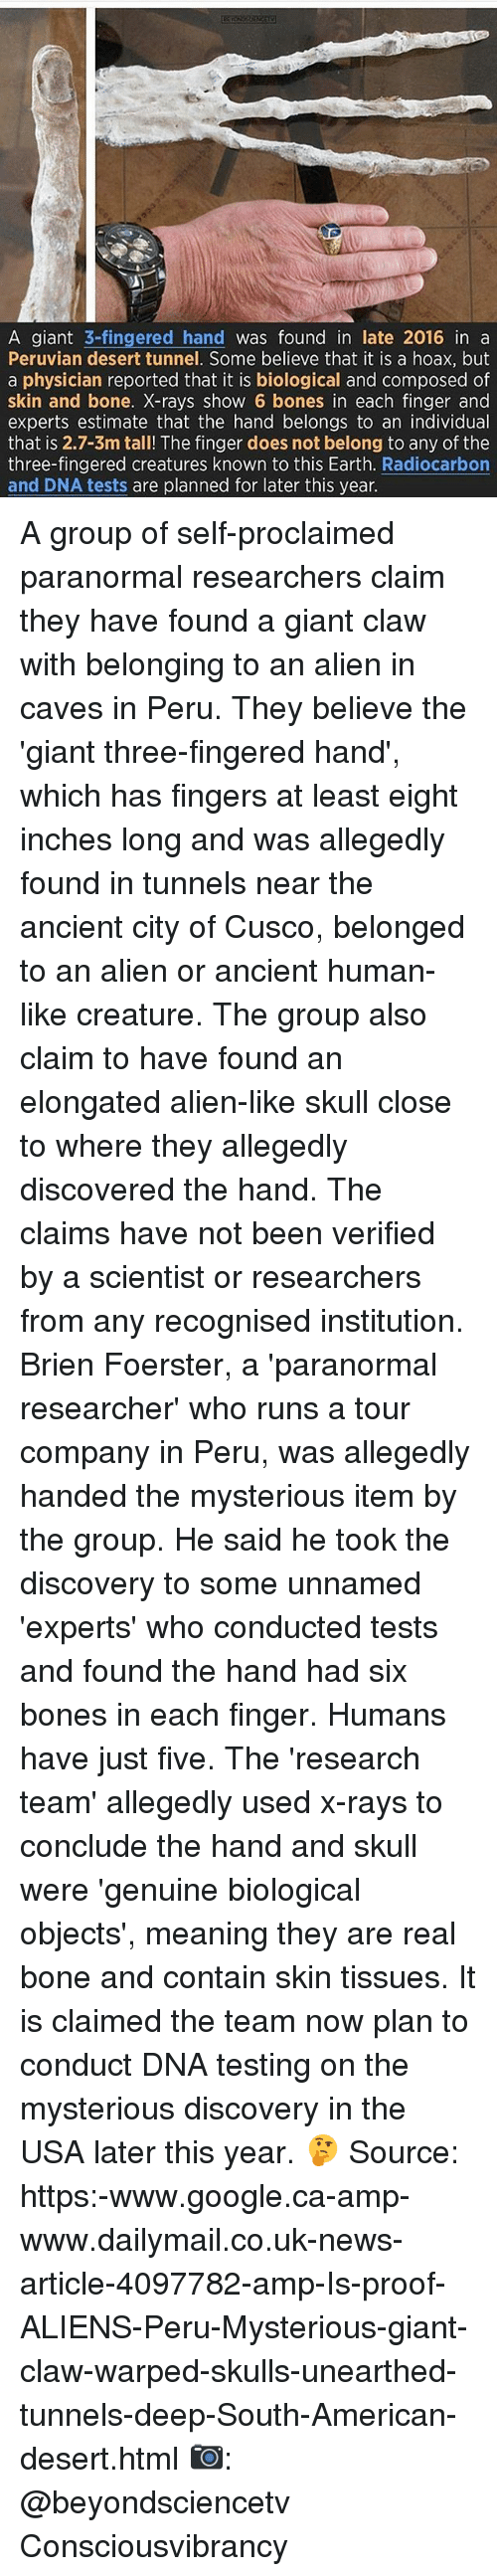 Fingered: A giant  3-fingered hand  was found in late 2016 in a  Peruvian desert tunnel. Some believe that it is a hoax, but  a physician reported that it is biological and composed of  skin and bone. X-rays show 6 bones in each finger and  experts estimate that the hand belongs to an individual  that is 2.7-3m tall! The finger does not belong to any of the  three-fingered creatures known to this Earth  Radiocarbon  and DNA tests are planned for later this year. A group of self-proclaimed paranormal researchers claim they have found a giant claw with belonging to an alien in caves in Peru. They believe the 'giant three-fingered hand', which has fingers at least eight inches long and was allegedly found in tunnels near the ancient city of Cusco, belonged to an alien or ancient human-like creature. The group also claim to have found an elongated alien-like skull close to where they allegedly discovered the hand. The claims have not been verified by a scientist or researchers from any recognised institution. Brien Foerster, a 'paranormal researcher' who runs a tour company in Peru, was allegedly handed the mysterious item by the group. He said he took the discovery to some unnamed 'experts' who conducted tests and found the hand had six bones in each finger. Humans have just five. The 'research team' allegedly used x-rays to conclude the hand and skull were 'genuine biological objects', meaning they are real bone and contain skin tissues. It is claimed the team now plan to conduct DNA testing on the mysterious discovery in the USA later this year. 🤔 Source: https:-www.google.ca-amp-www.dailymail.co.uk-news-article-4097782-amp-Is-proof-ALIENS-Peru-Mysterious-giant-claw-warped-skulls-unearthed-tunnels-deep-South-American-desert.html 📷: @beyondsciencetv Consciousvibrancy